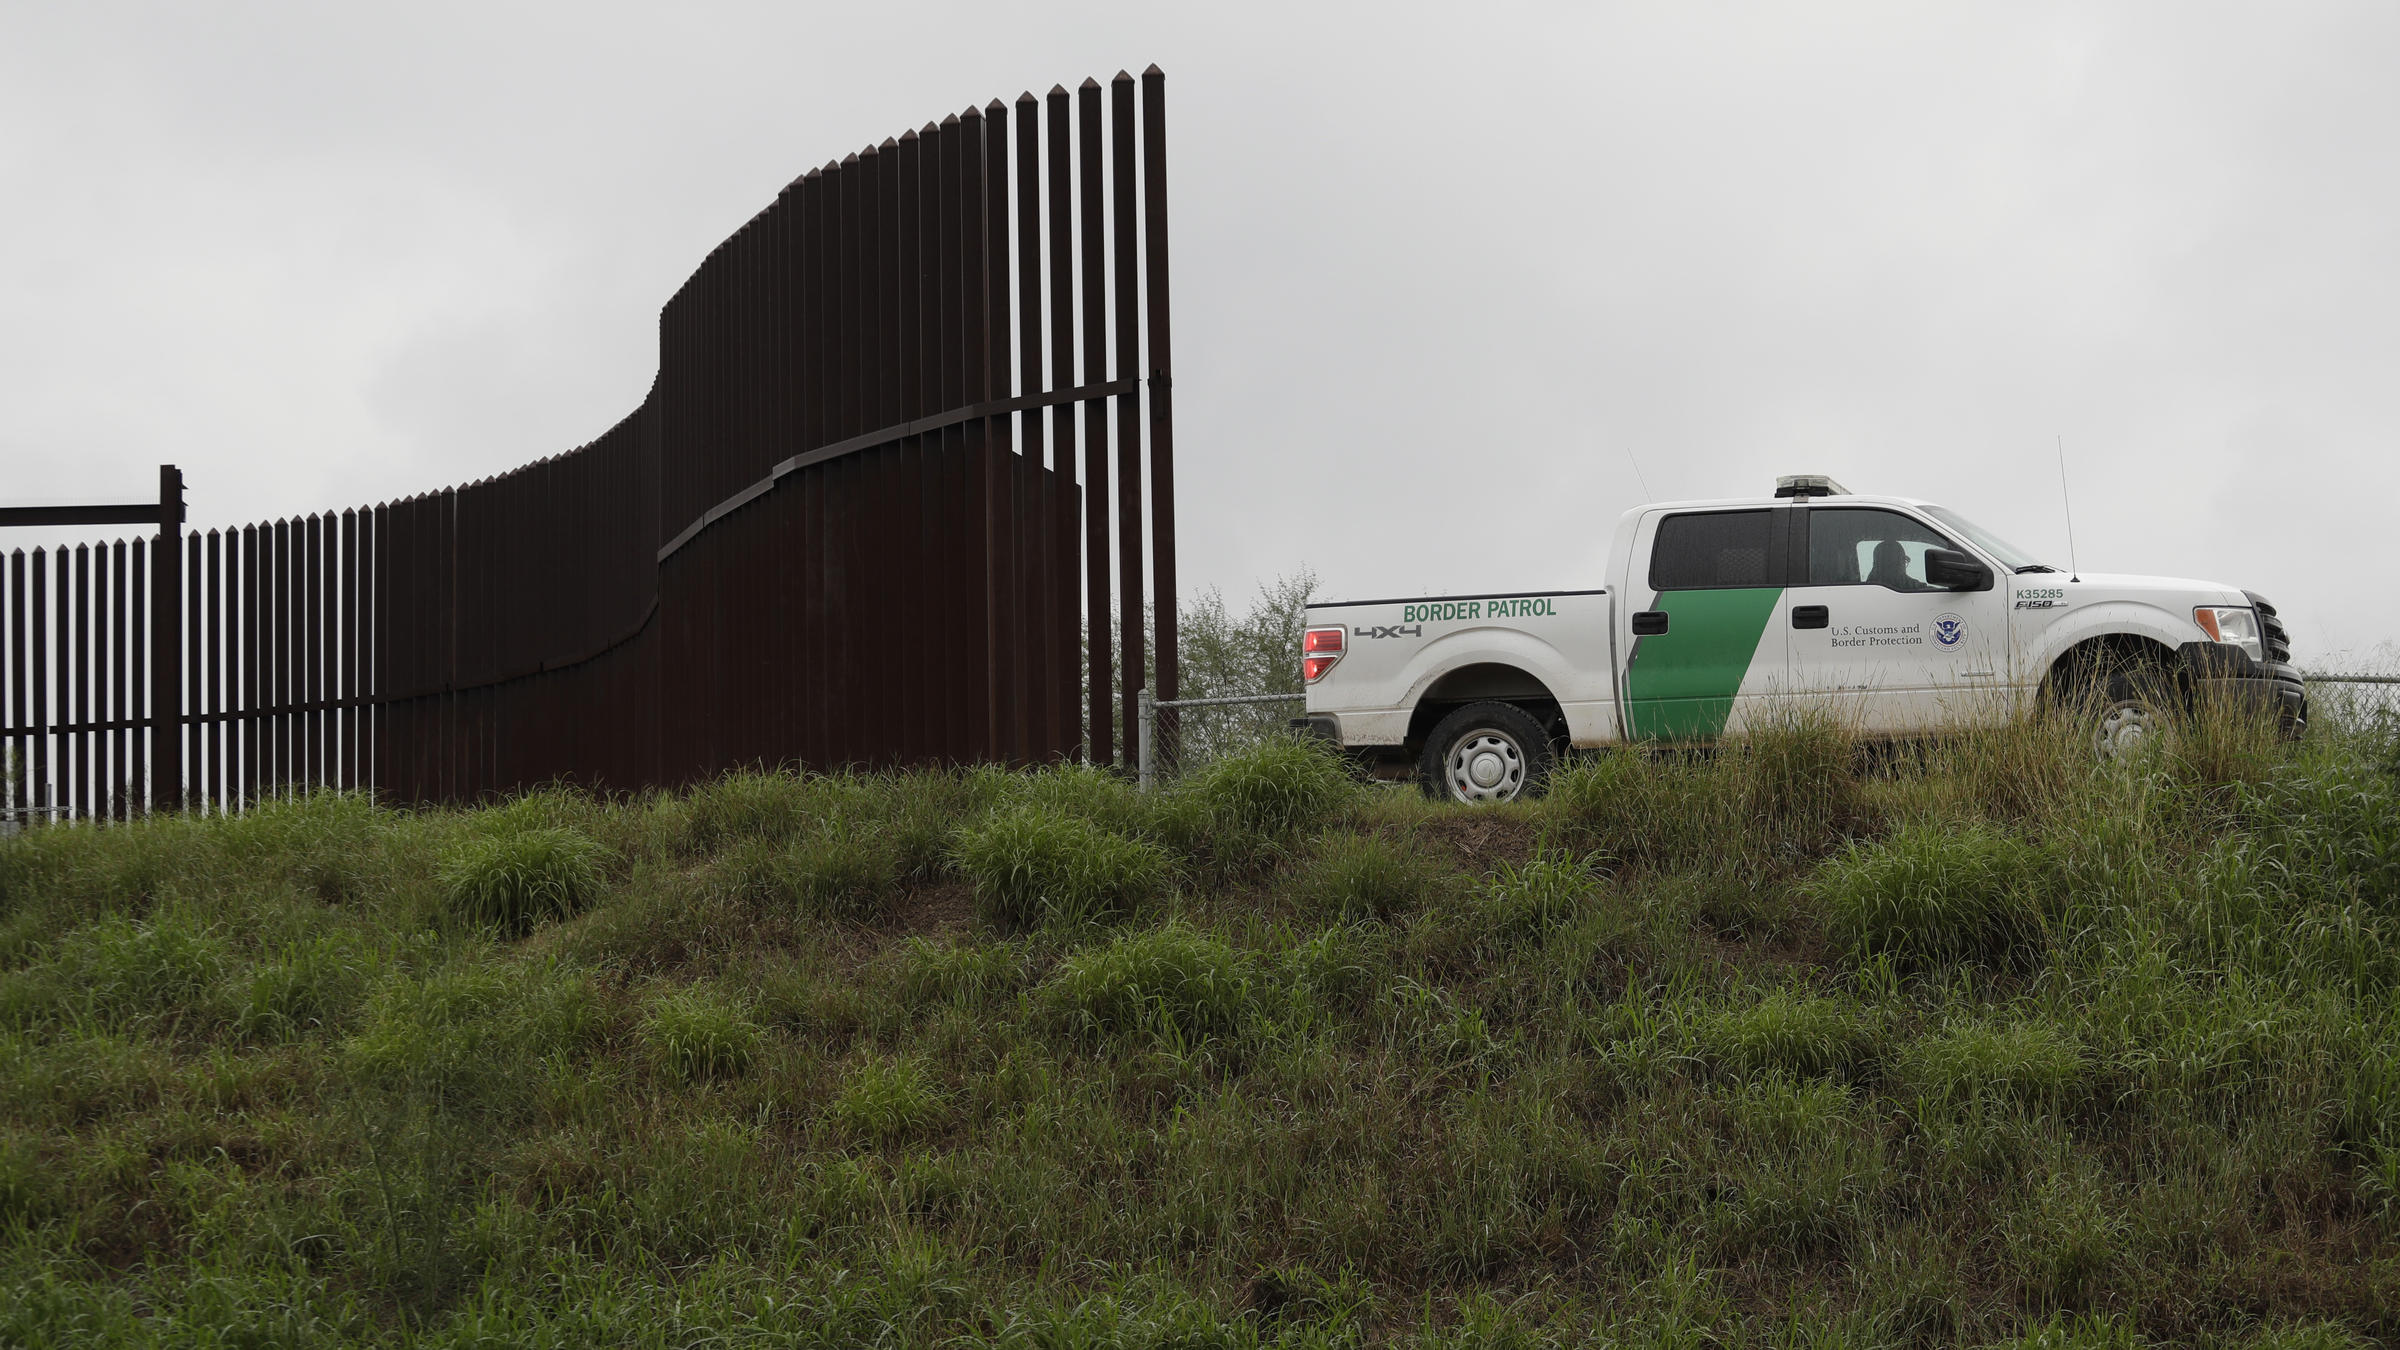 Trump's Plan To Hire 15,000 Border Patrol And ICE Agents Won